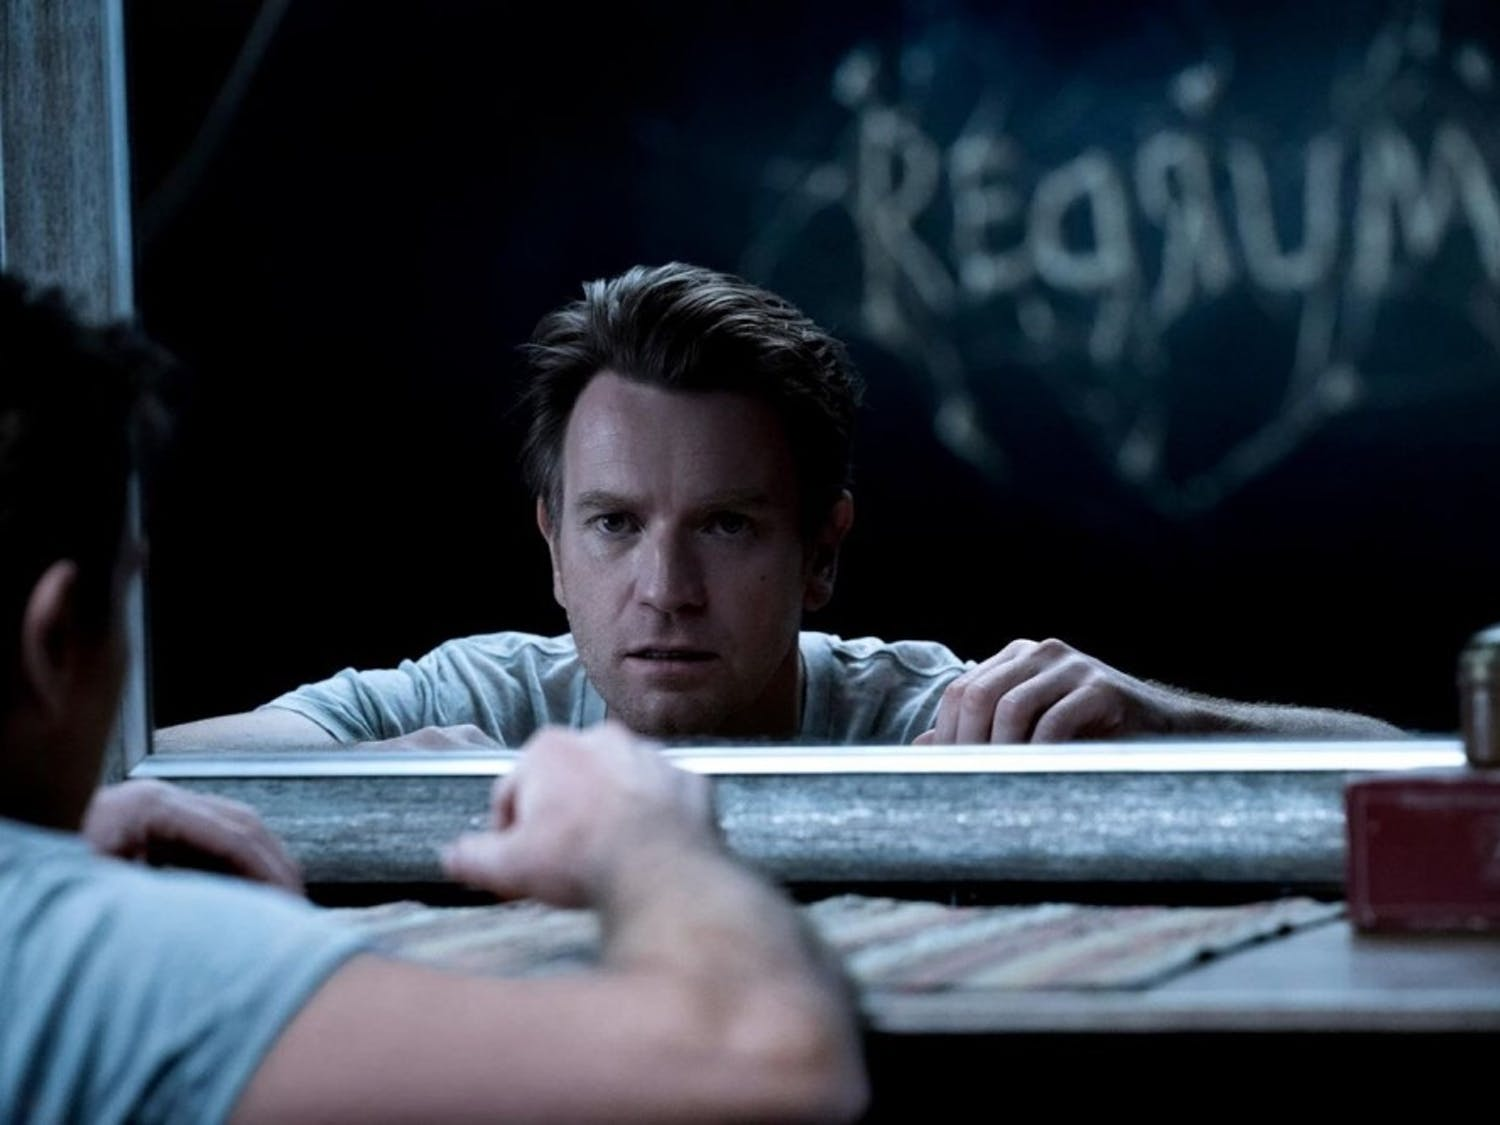 """Ewan McGregor stars as Dan Torrance in """"Doctor Sleep"""". The ghostly 'REDRUM' message on the wall harkens back to the film's predecessor: """"The Shining""""."""